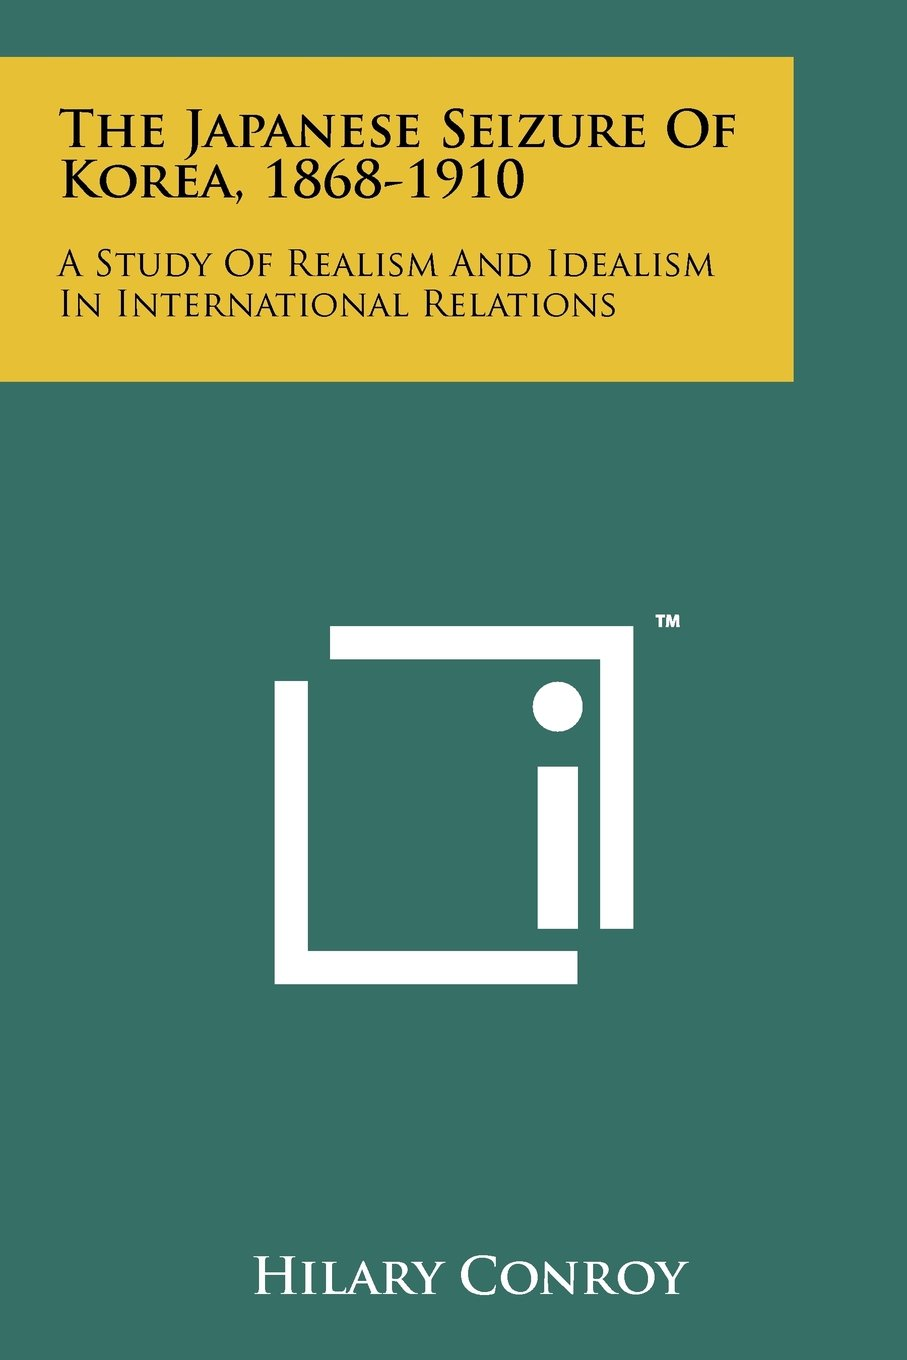 concept of idealism in international relations